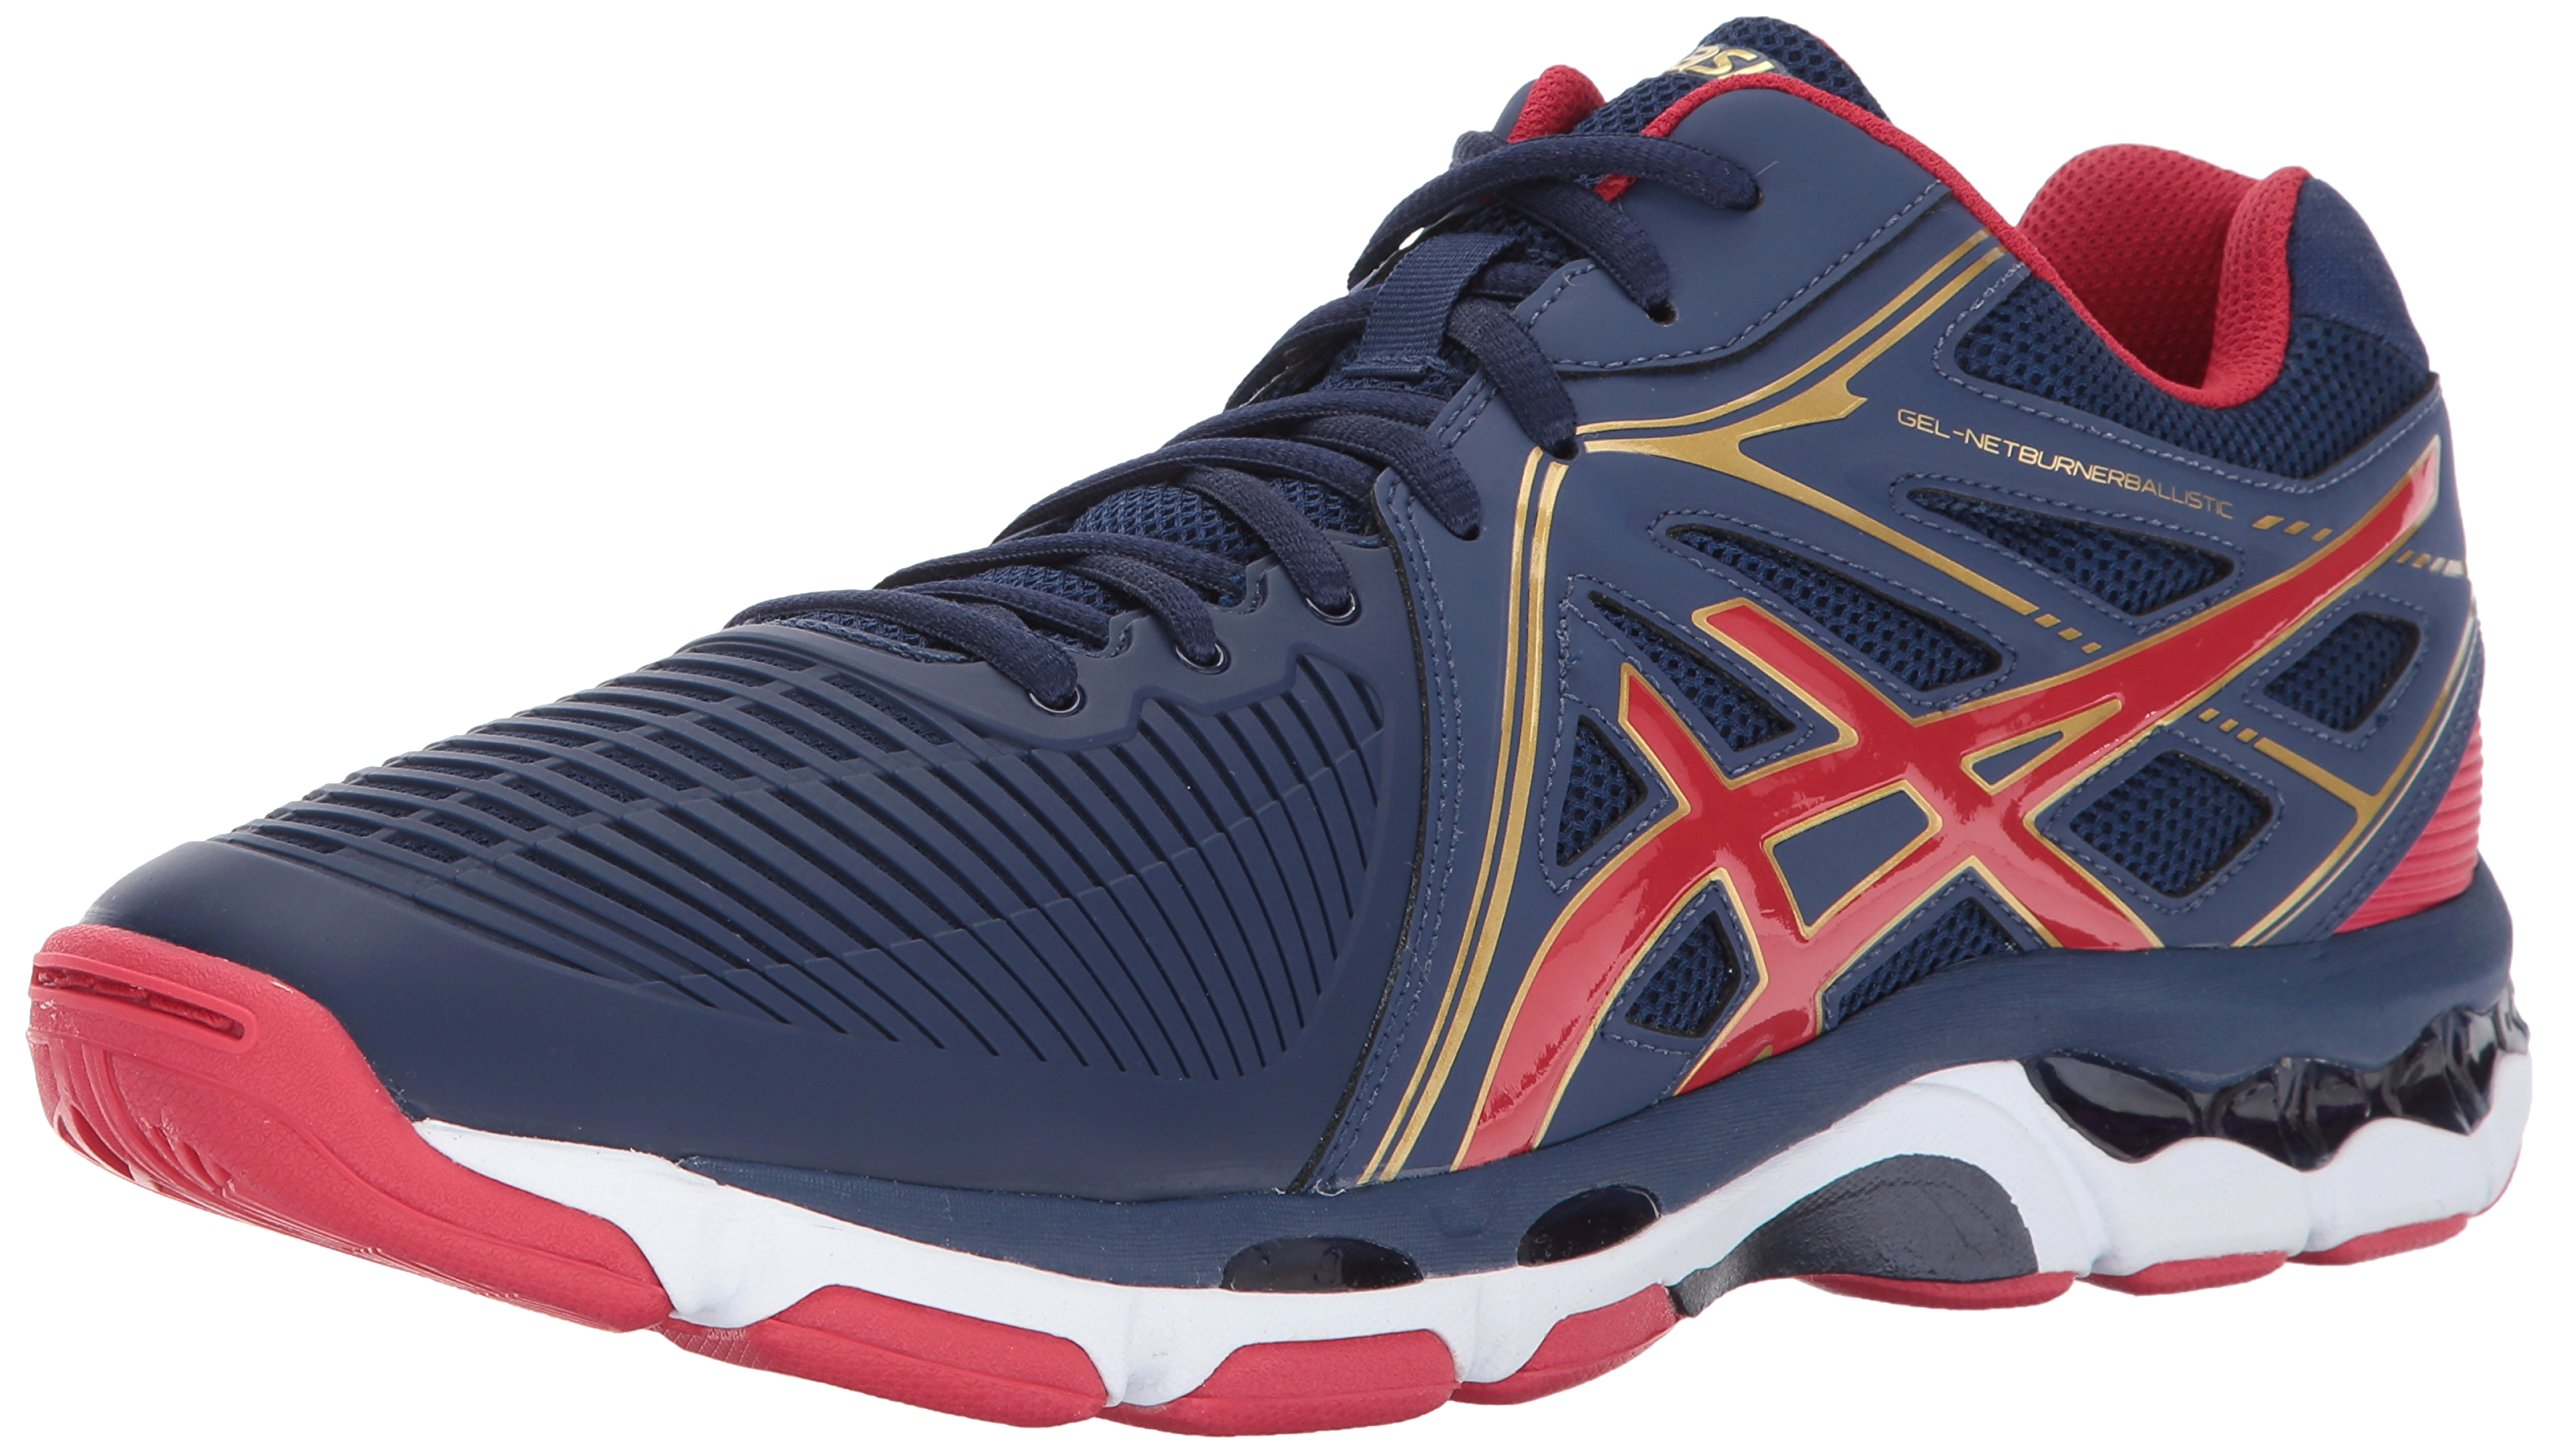 ASICS Men's Gel-Netburner Ballistic MT Volleyball Shoe, Indigo Blue/Prime Red/Rich Gold, 6 Medium US